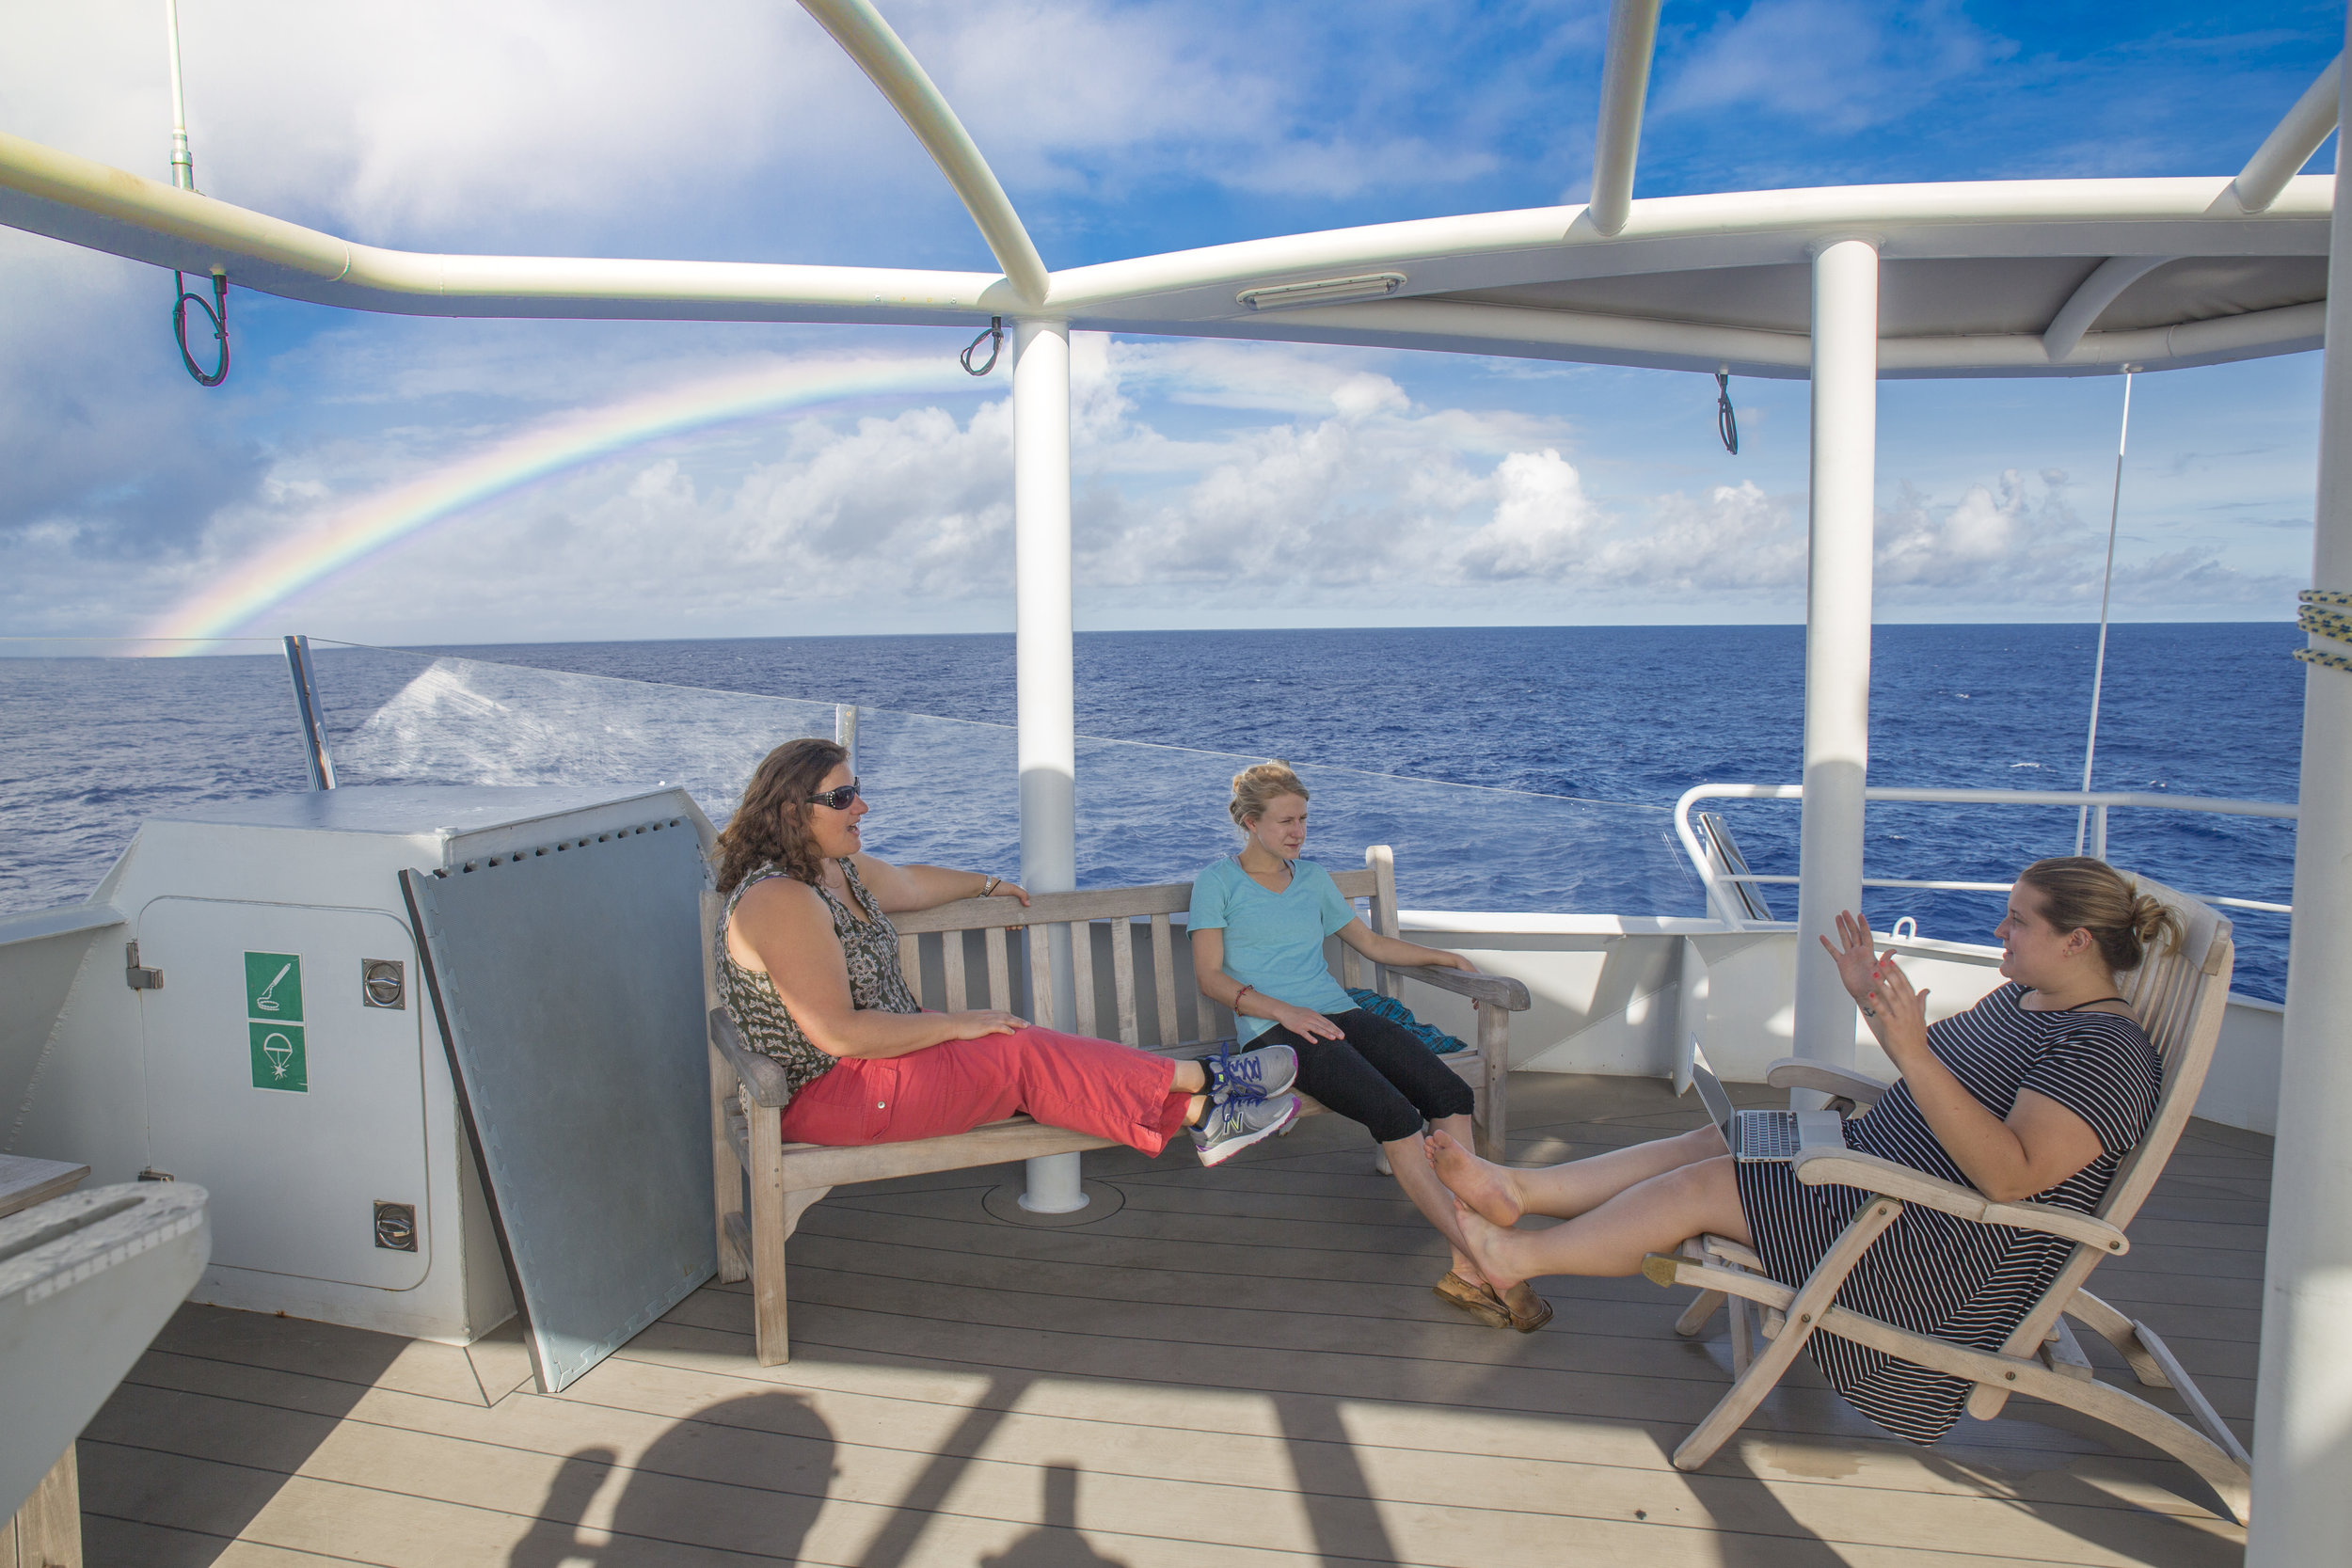 Discussing coral mucus aboard the R/V Falkor with Randi Rotjan and Anna Gauthier